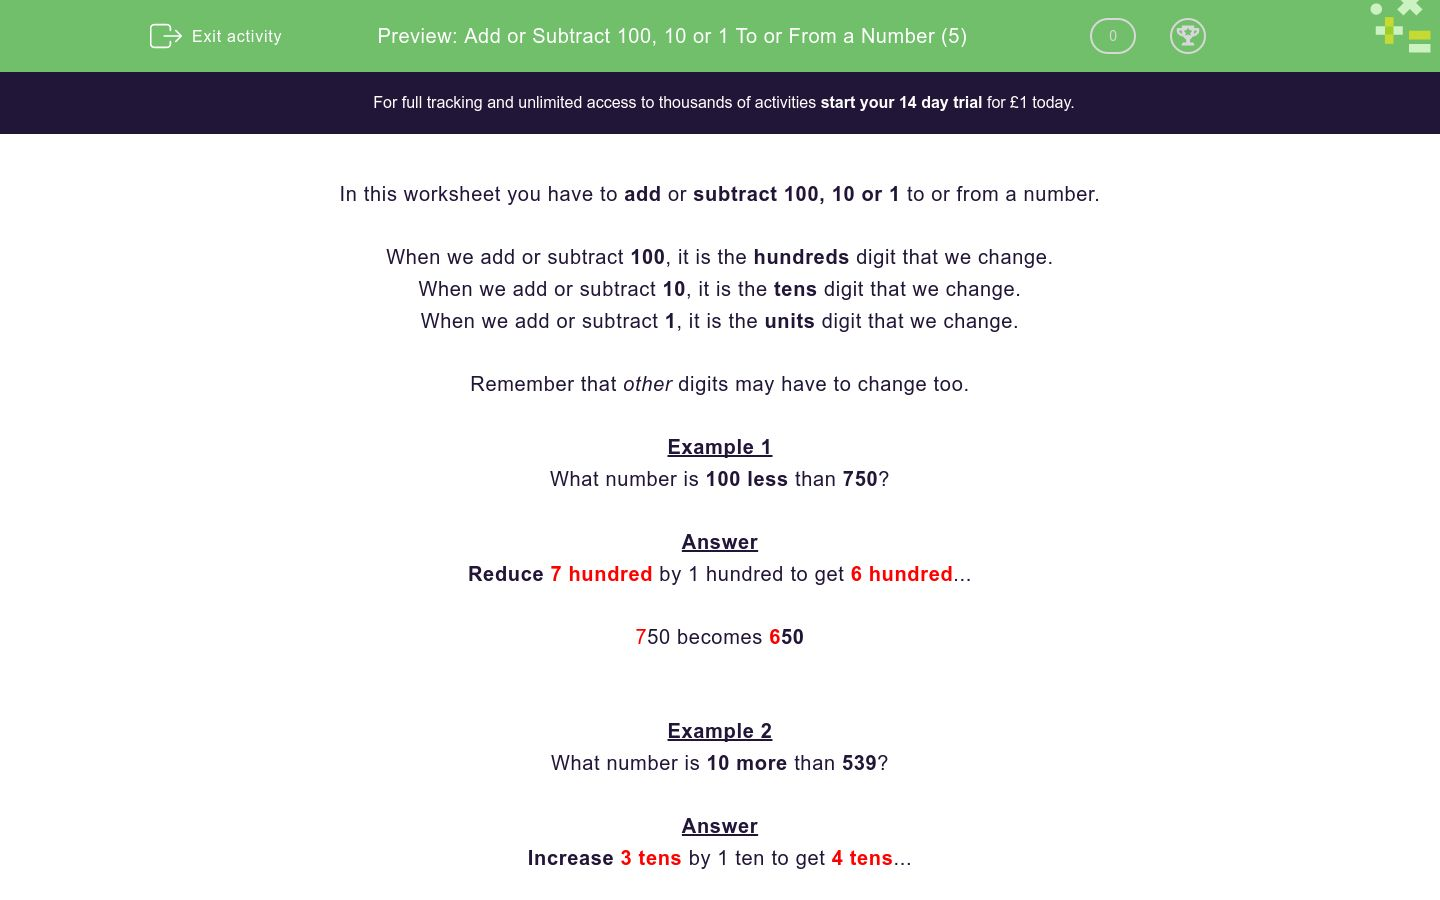 'Add or Subtract 100, 10 or 1 To or From a Number (5)' worksheet